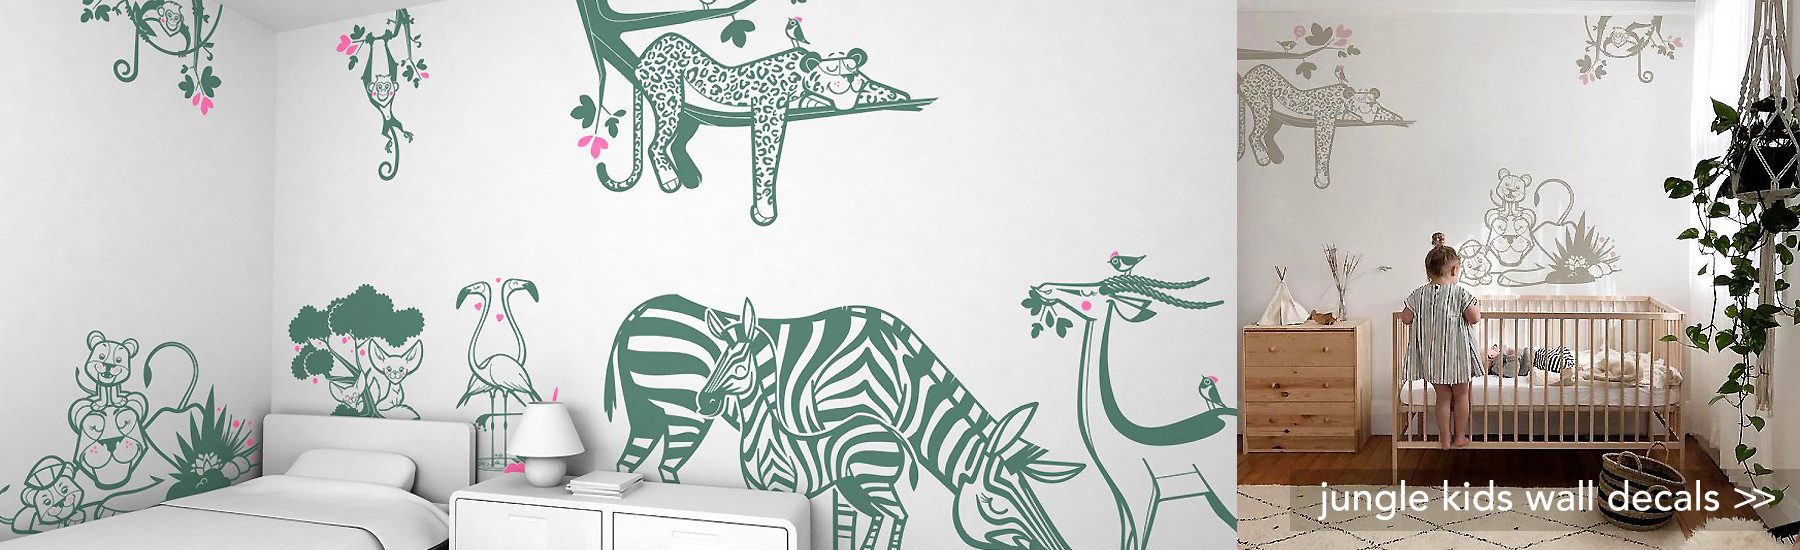 jungle animal kids wall decals for nursery and children's room